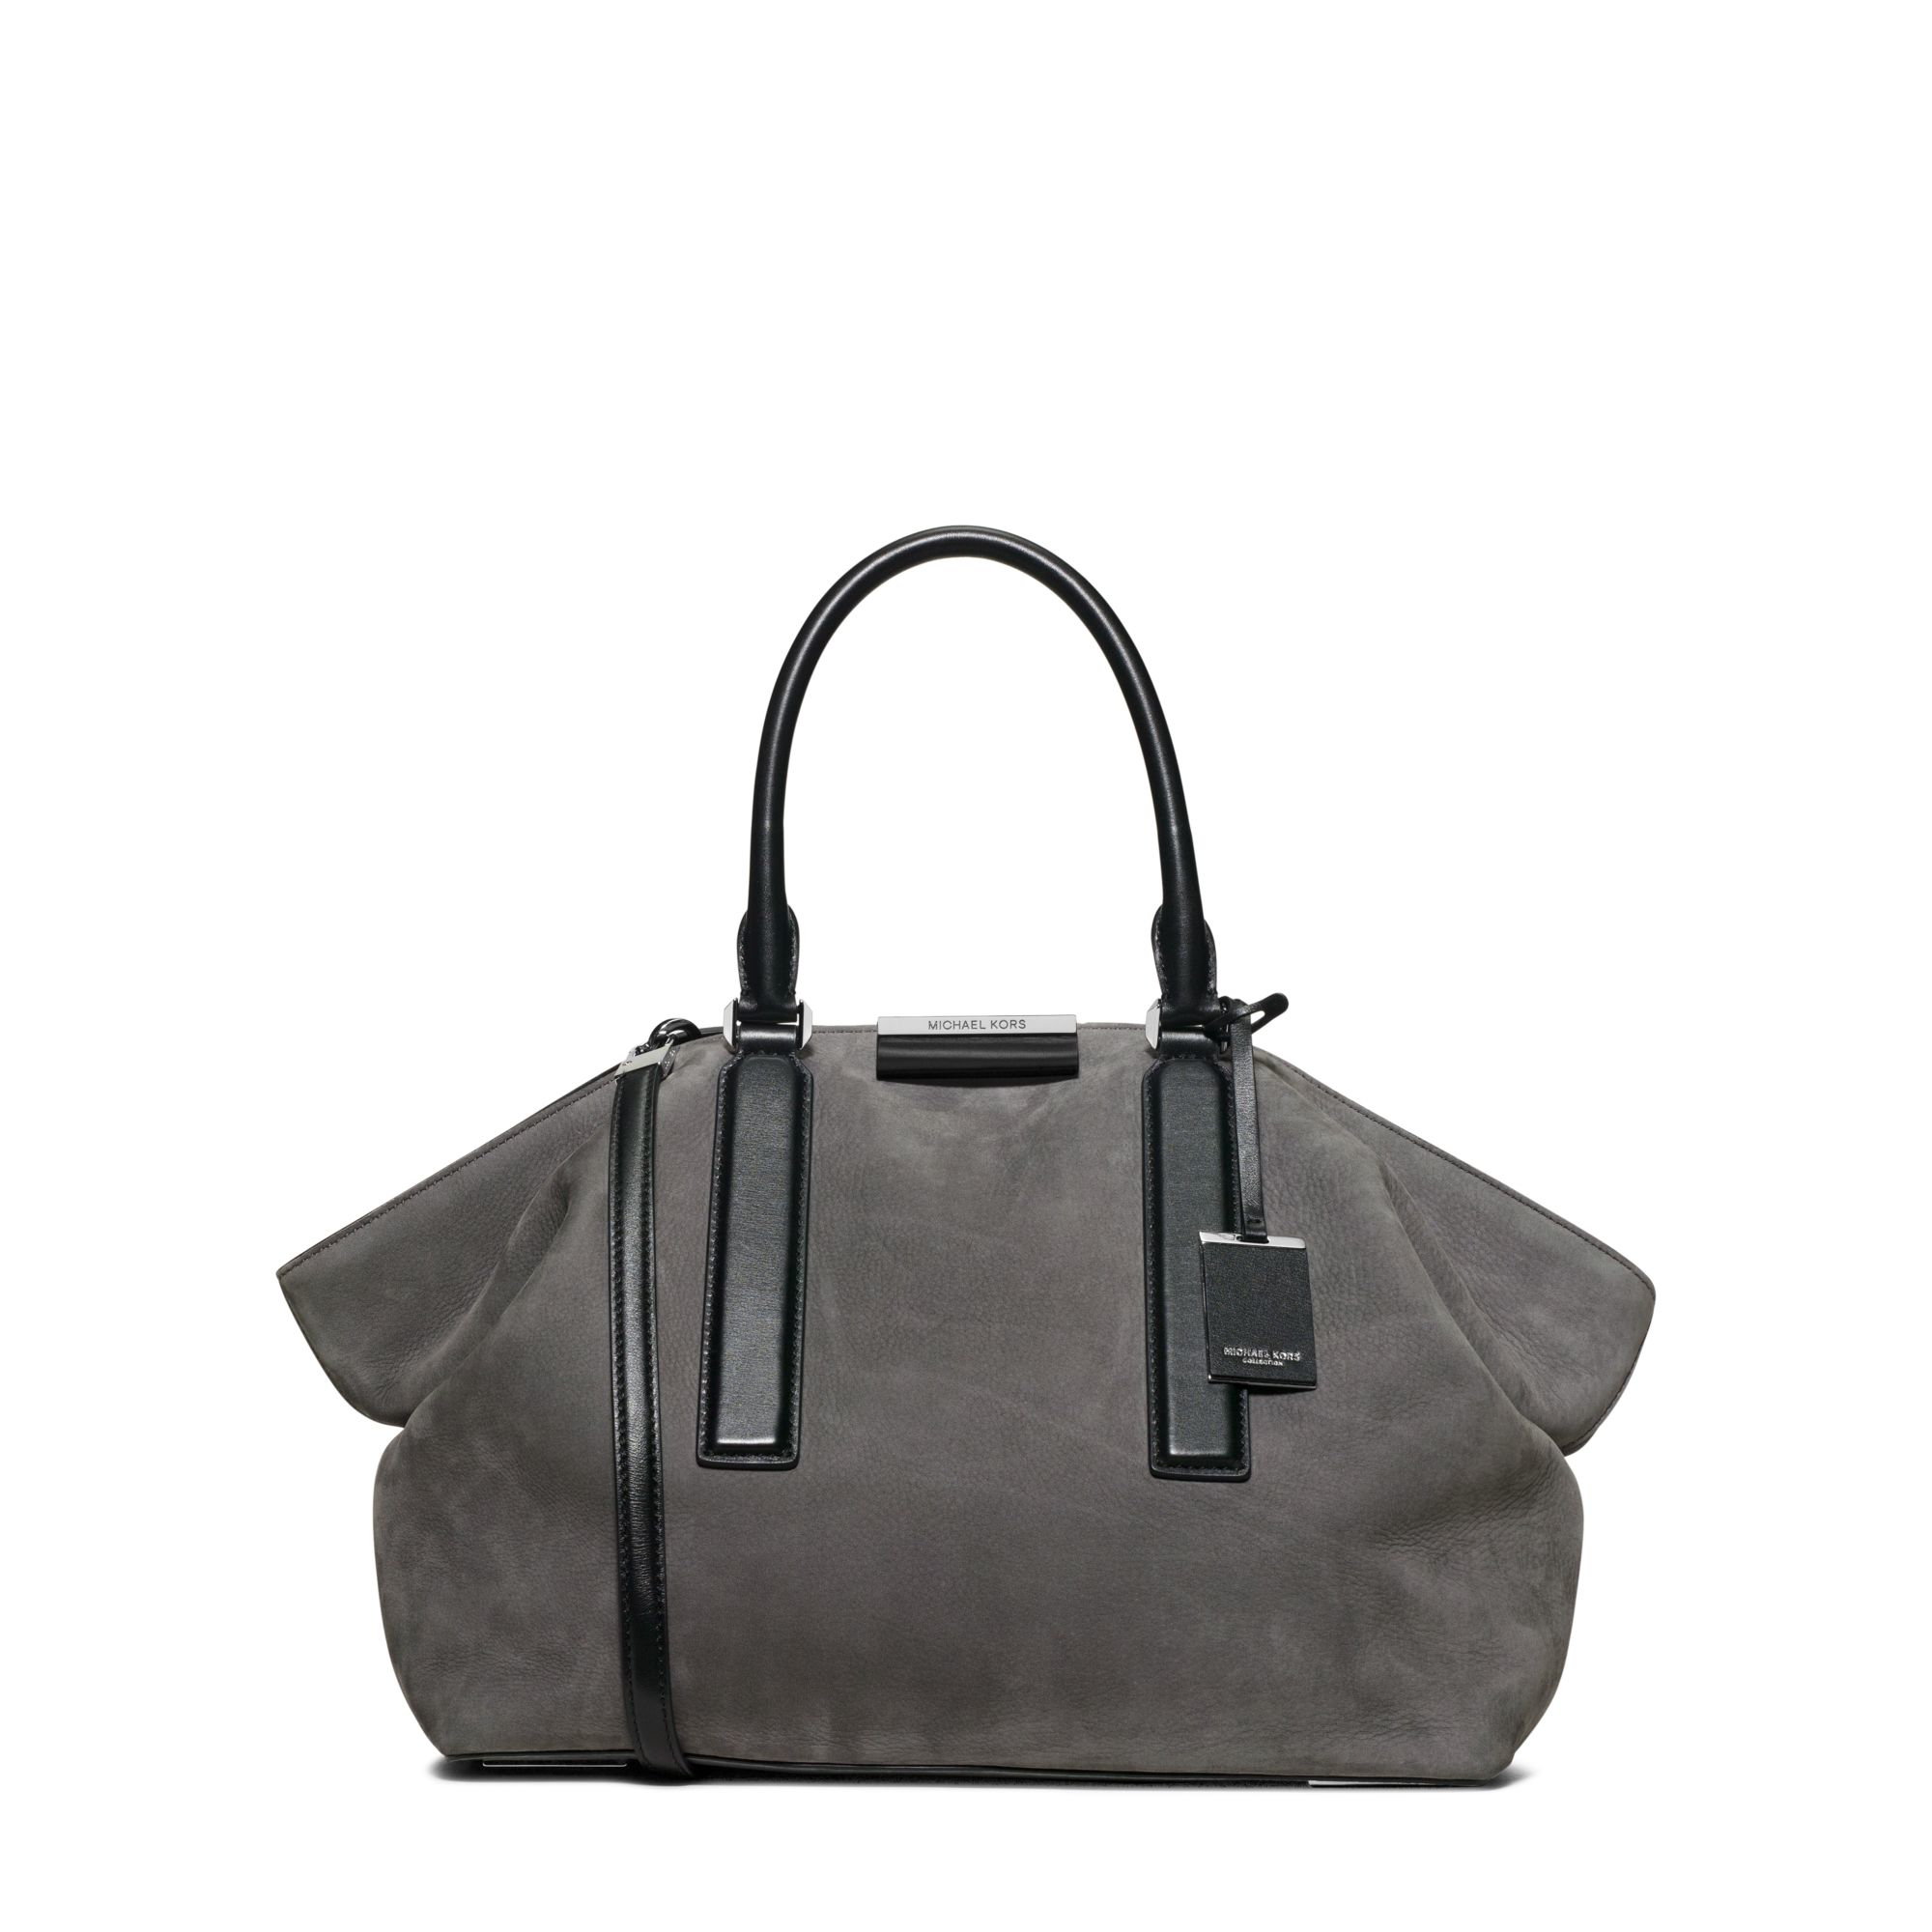 94c99070332 Michael Kors Lexi Large Suede And Leather Satchel in Gray - Lyst